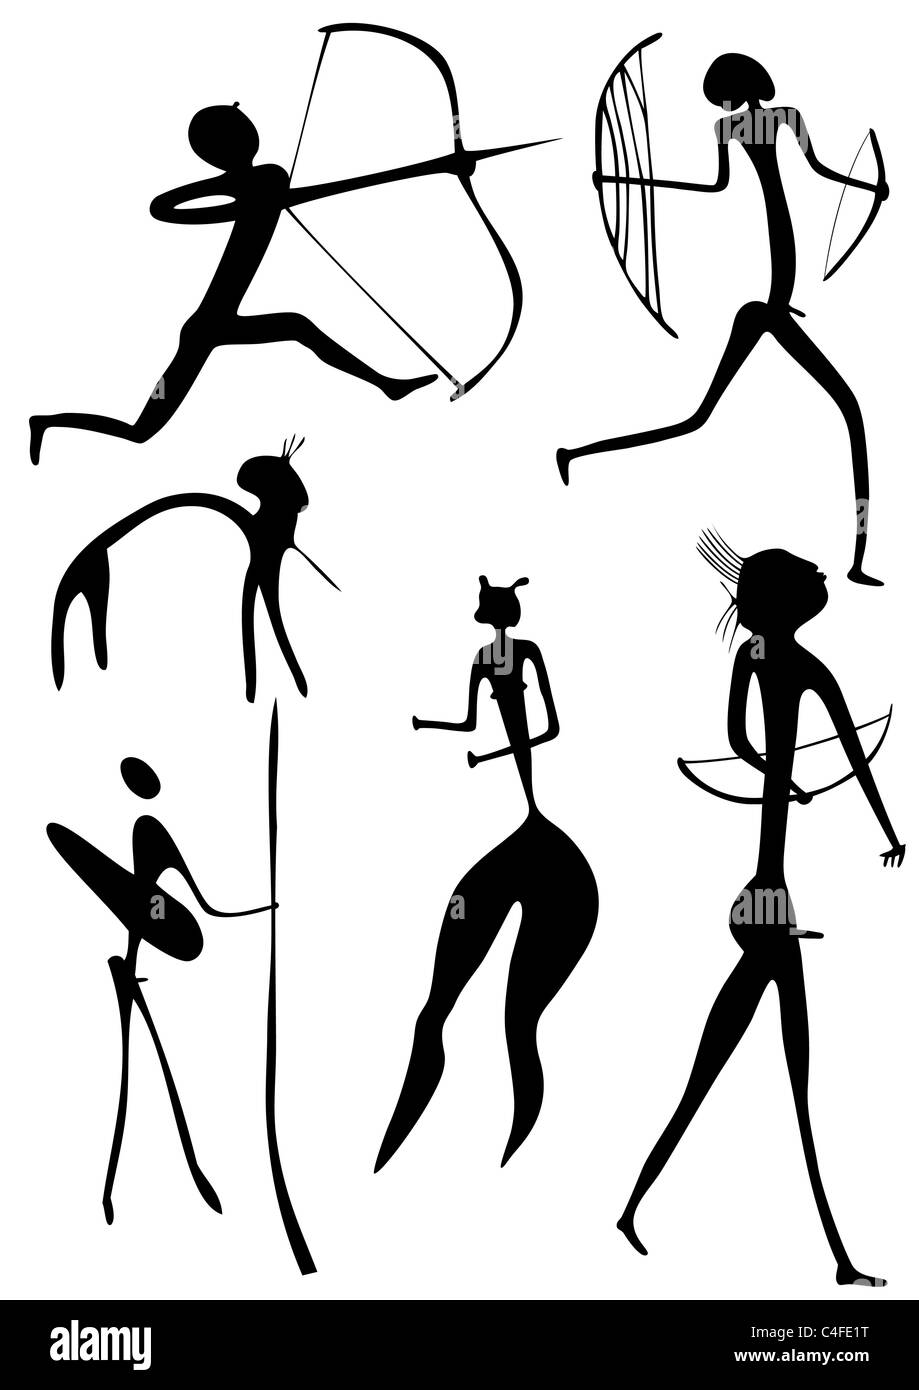 Primitive figures looks like cave painting - primitive art - warriors Stock Photo